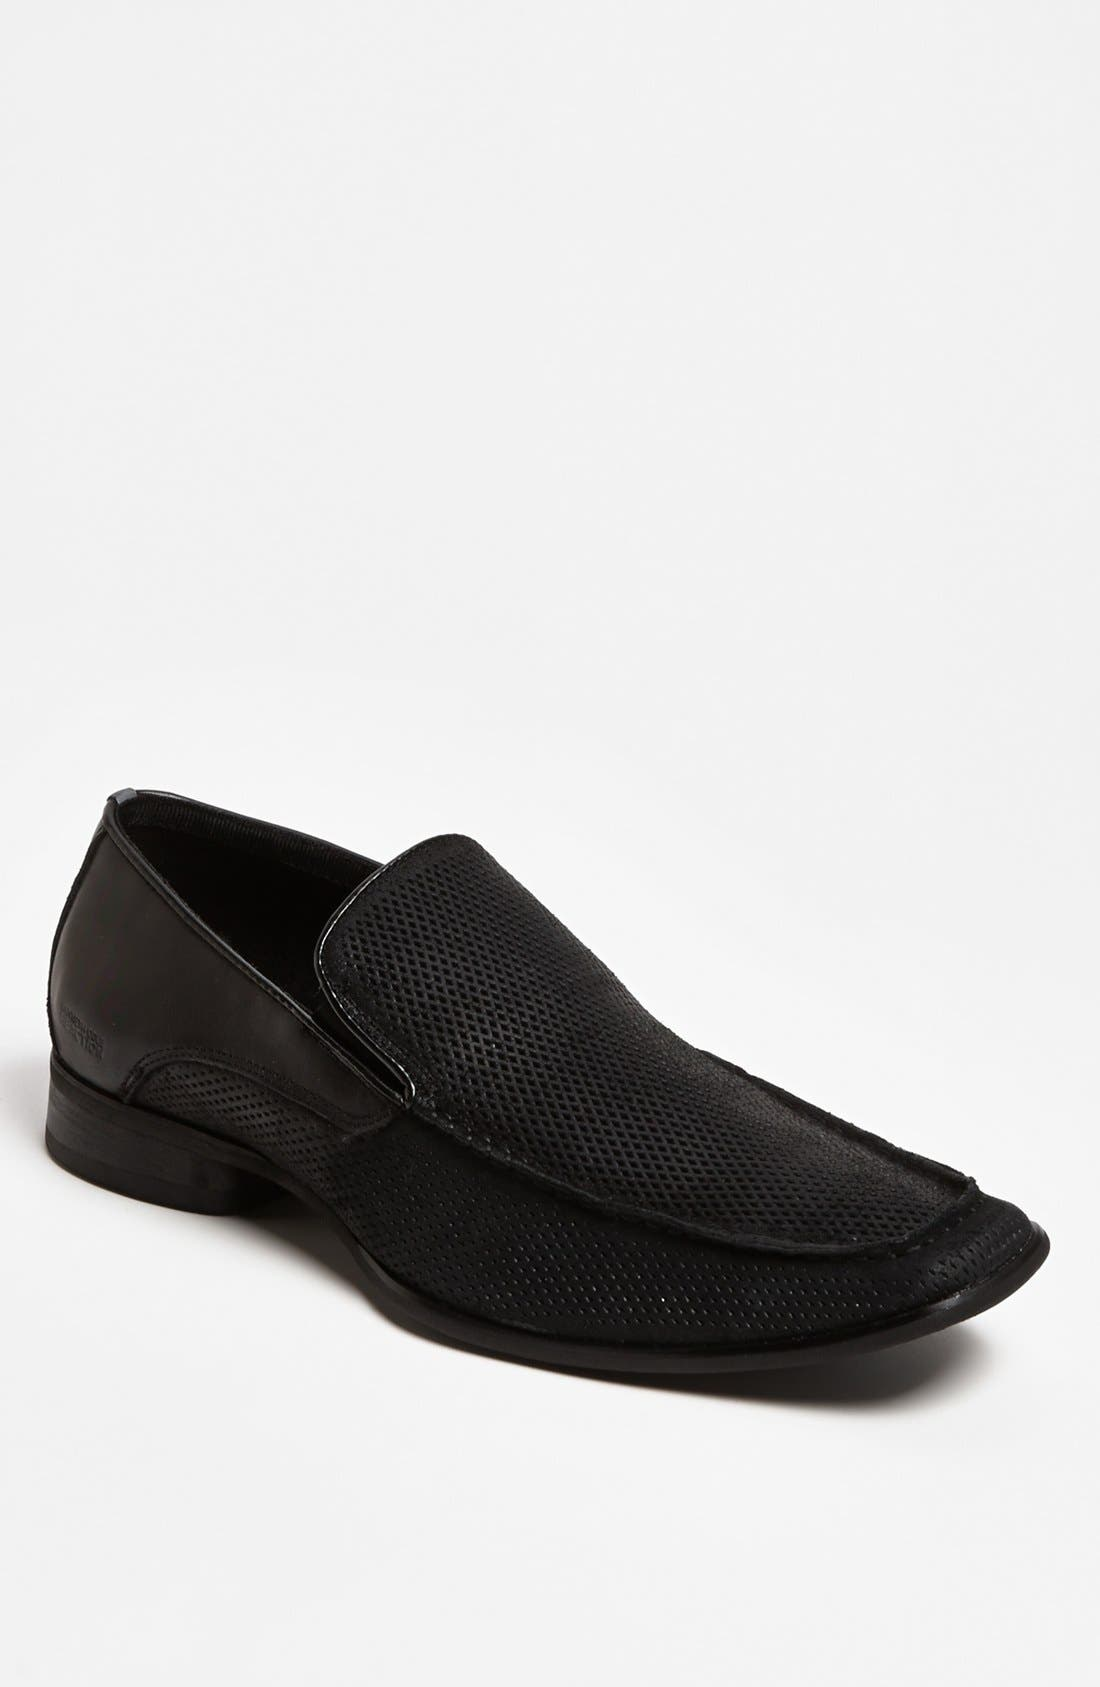 Main Image - Kenneth Cole Reaction 'Note Worthy' Venetian Loafer